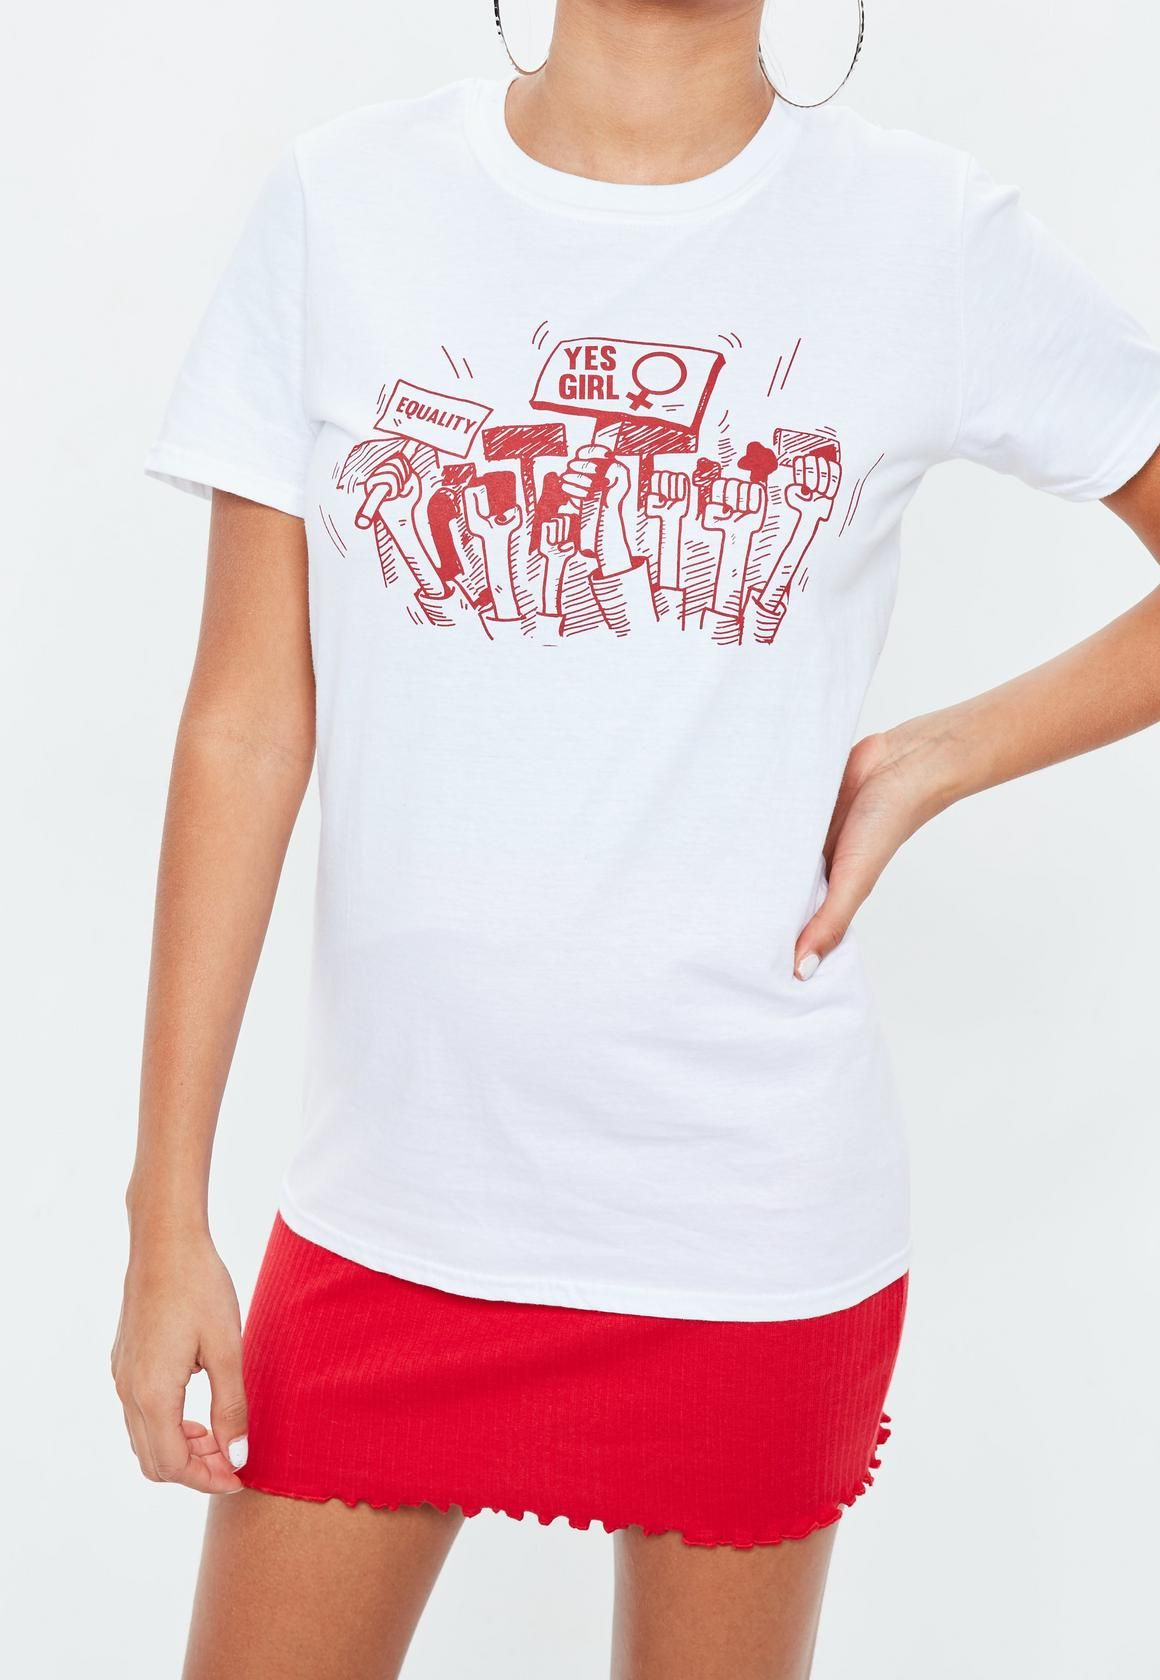 802acdf7 A white graphic t-shirt featuring a yes girl print, short sleeves and loose  fit.